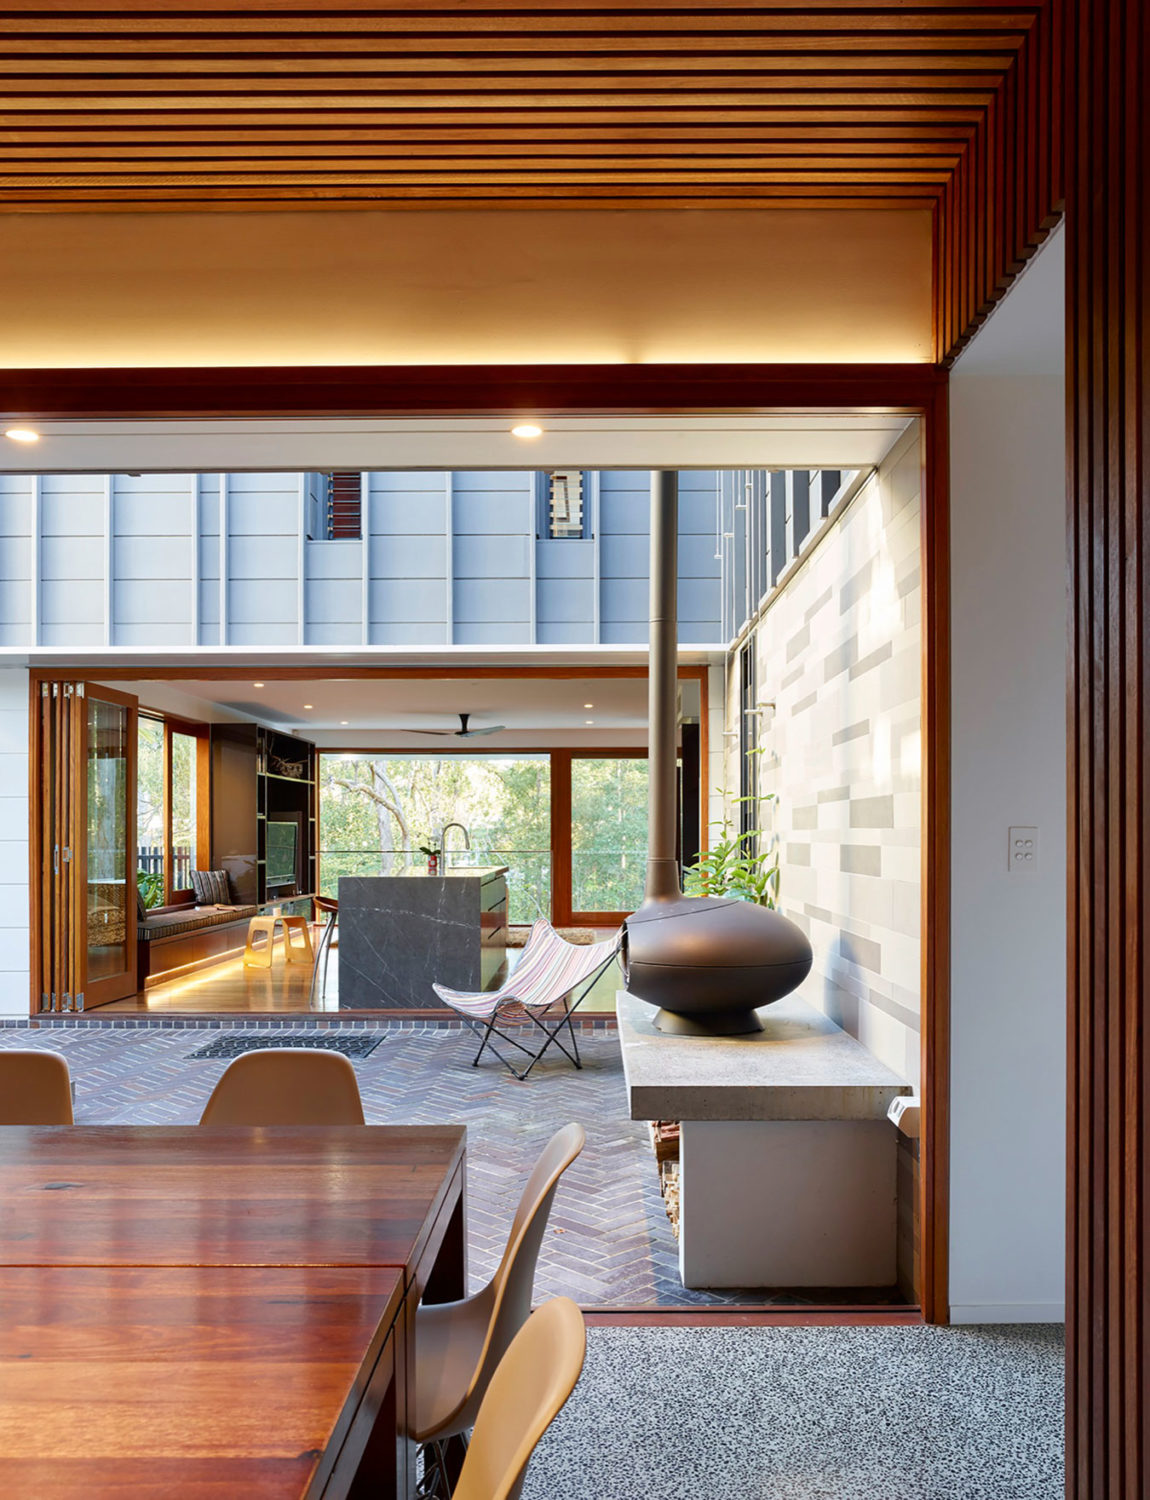 Fifth Avenue by O'Neill Architecture (9)